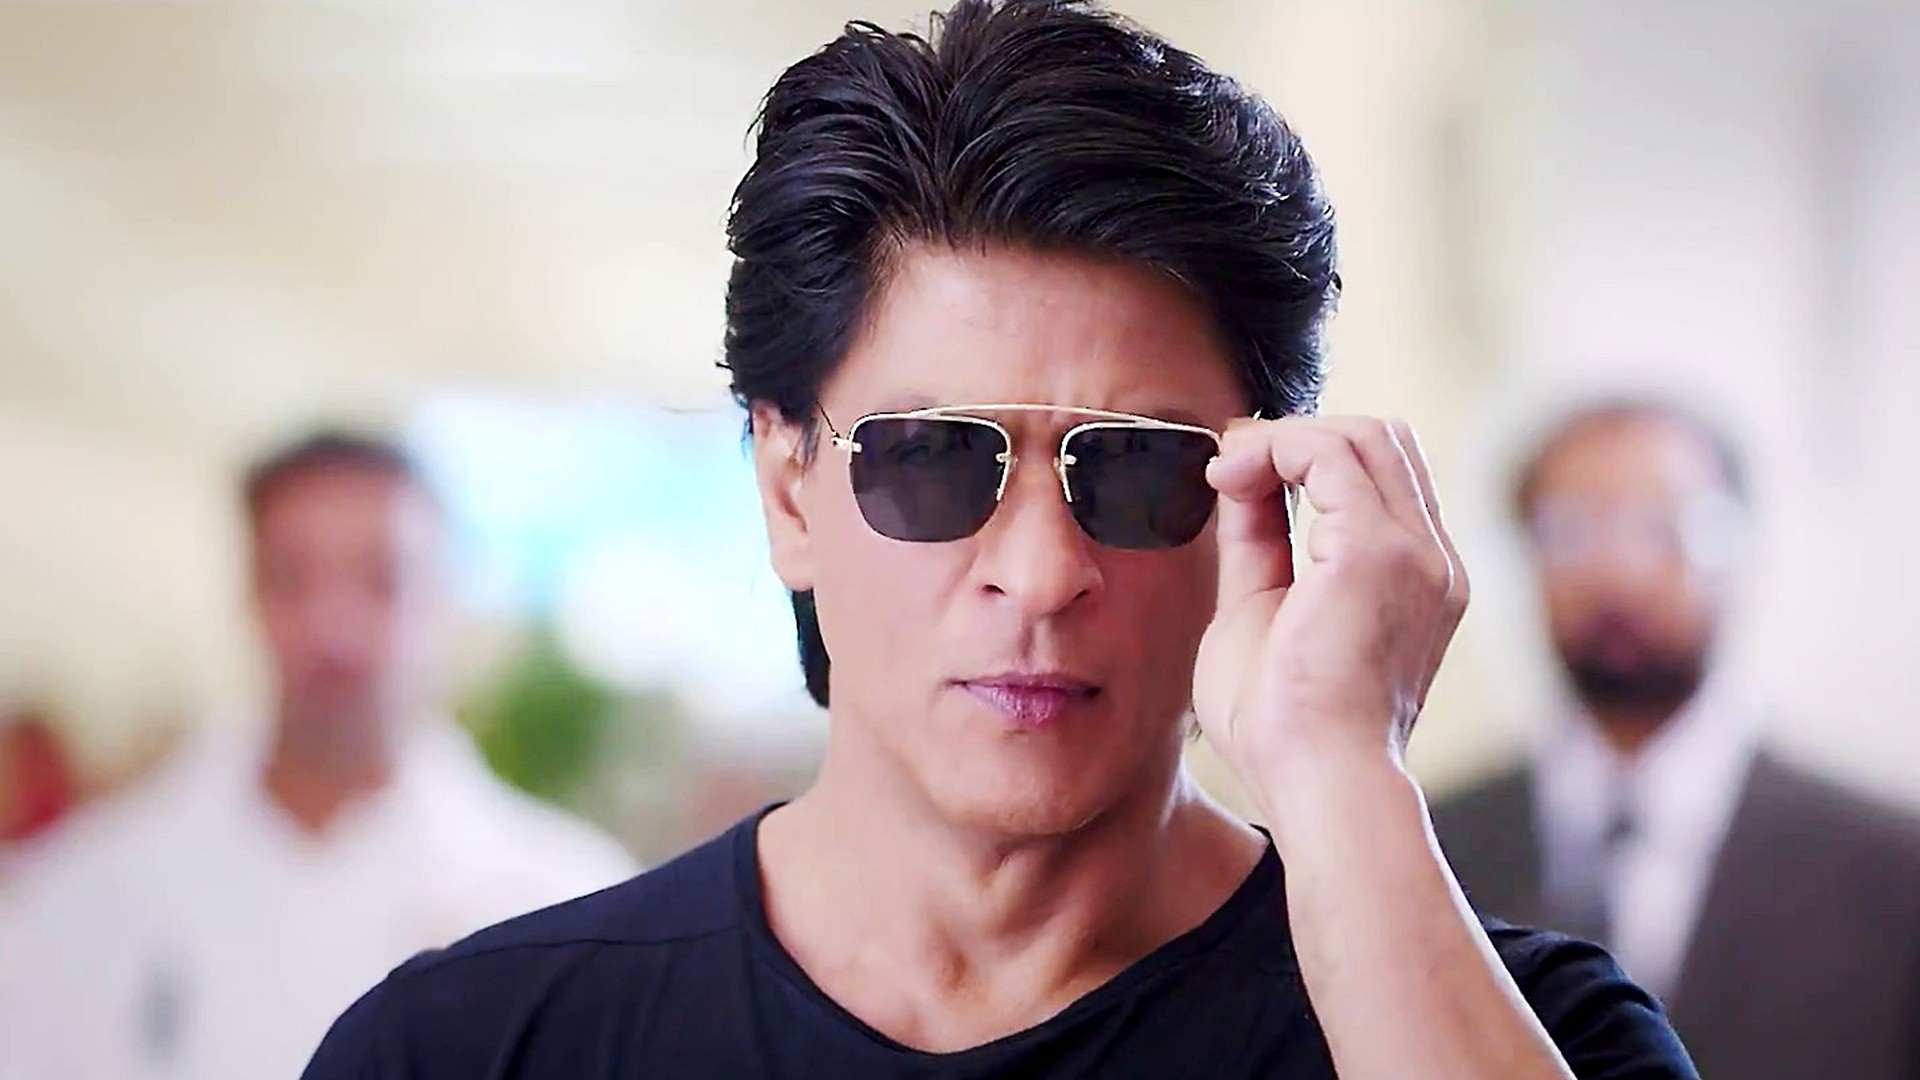 Global Pictures Gallery Shah Rukh Khan Full Hd Wallpapers: Shah Rukh Khan Wallpapers High Resolution And Quality Download